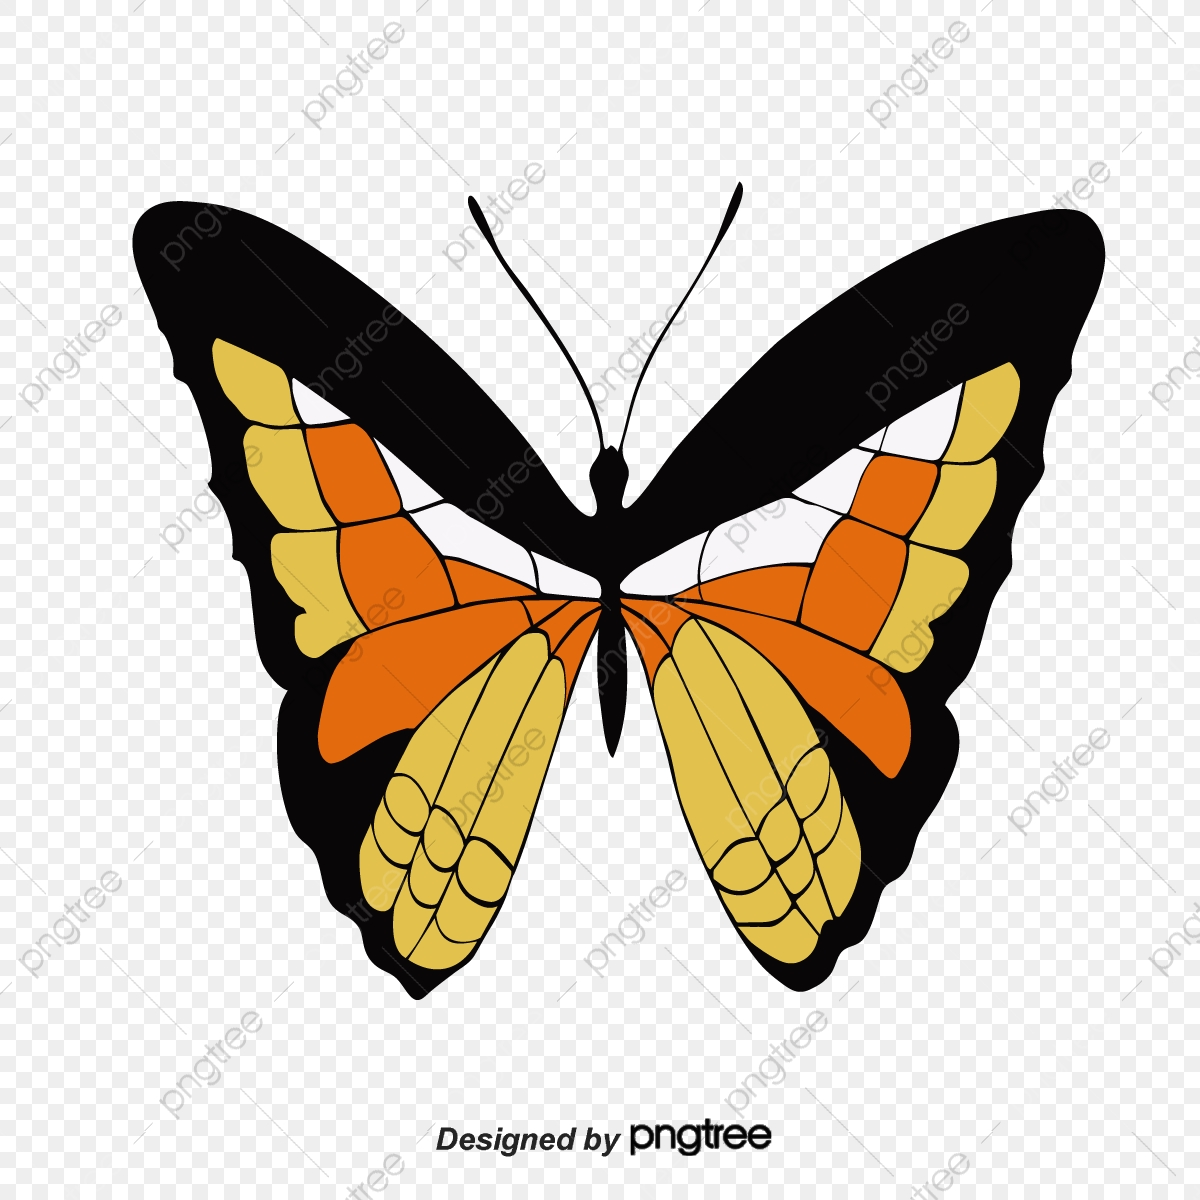 hight resolution of commercial use resource upgrade to premium plan and get license authorization upgradenow butterfly clipart